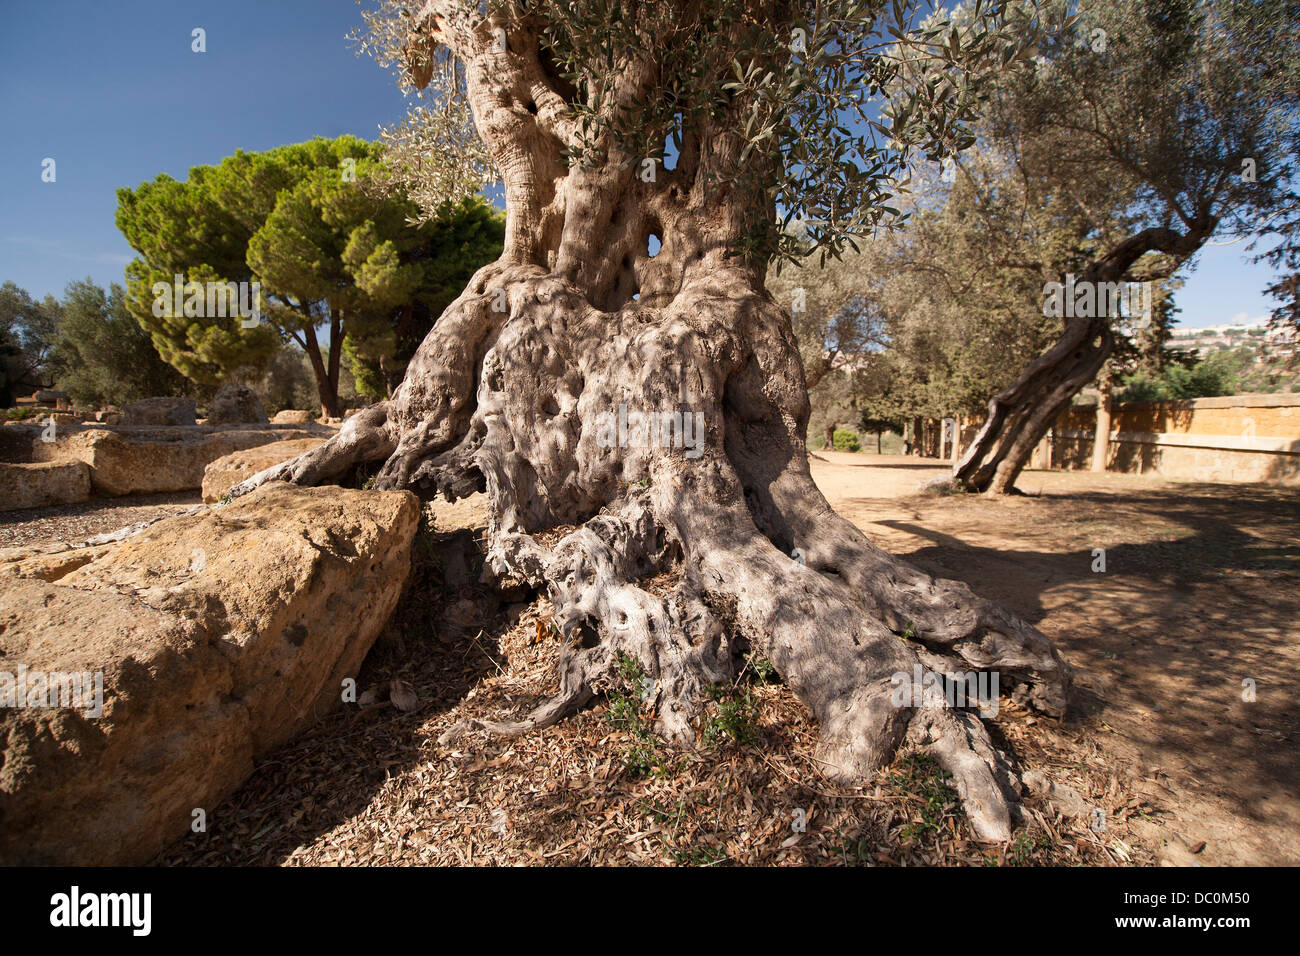 Giant olive tree root, Puglia Italy. - Stock Image